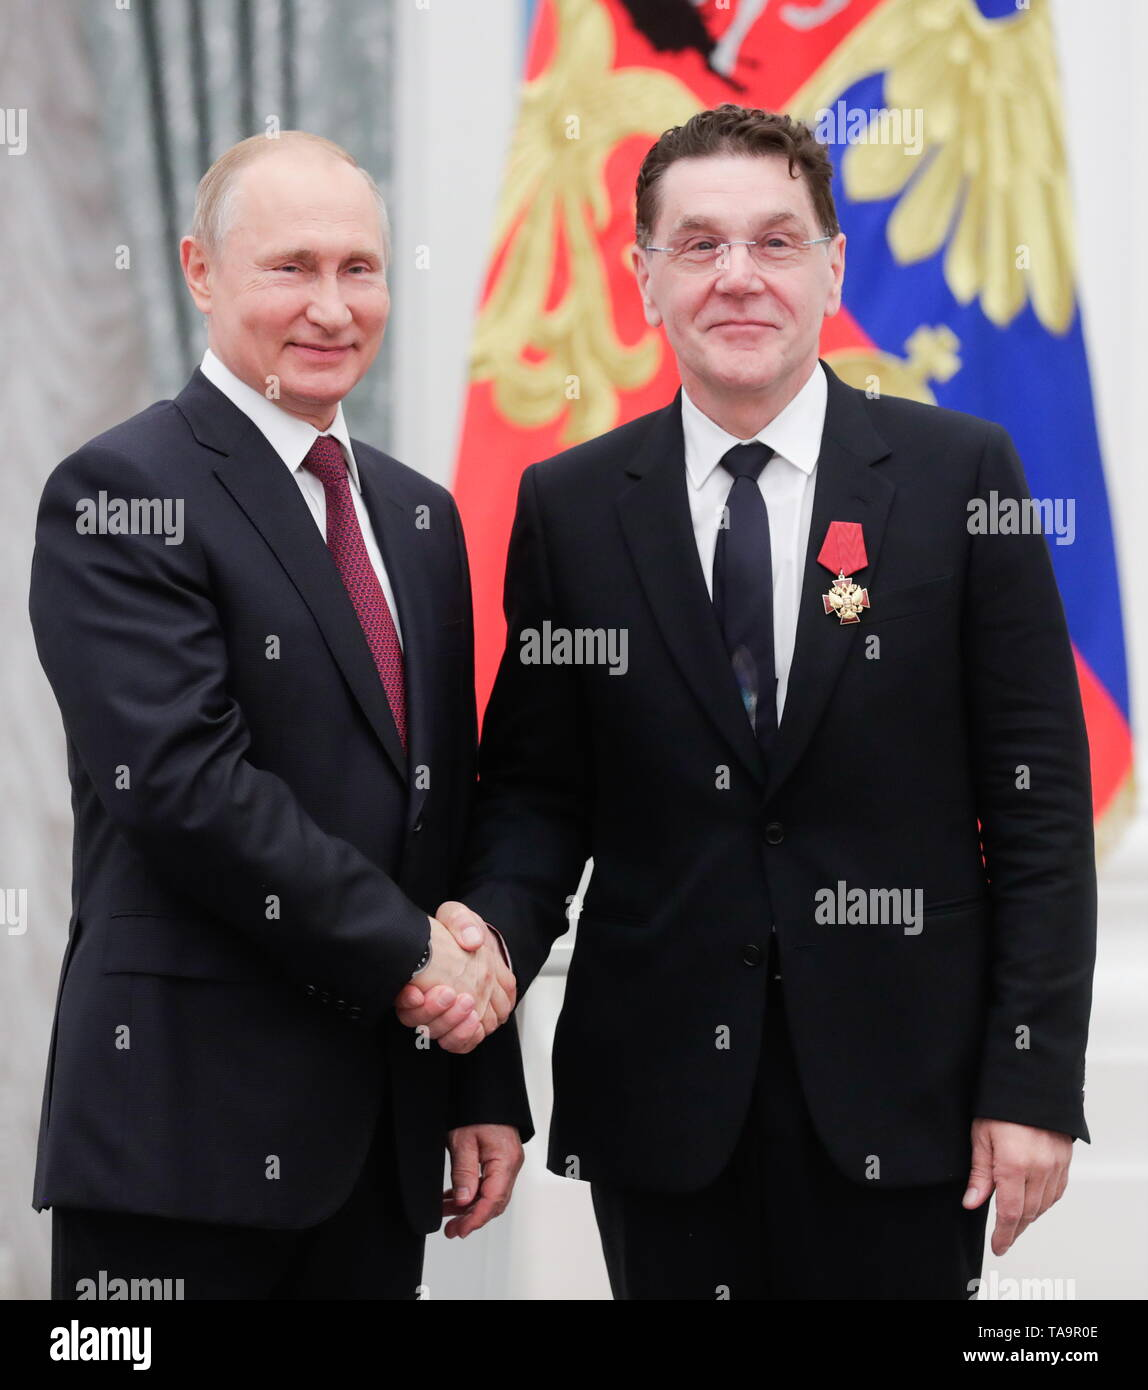 Moscow, Russia. 23rd May, 2019. MOSCOW, RUSSIA - MAY 23, 2019: Russia's President Vladimir Putin (L) and Russian actor Sergei Makovetsky, awarded the Order of Merit for the Fatherland (4th class), during a ceremony to present state decorations at Moscow's Kremlin. Mikhail Metzel/TASS Credit: ITAR-TASS News Agency/Alamy Live News - Stock Image